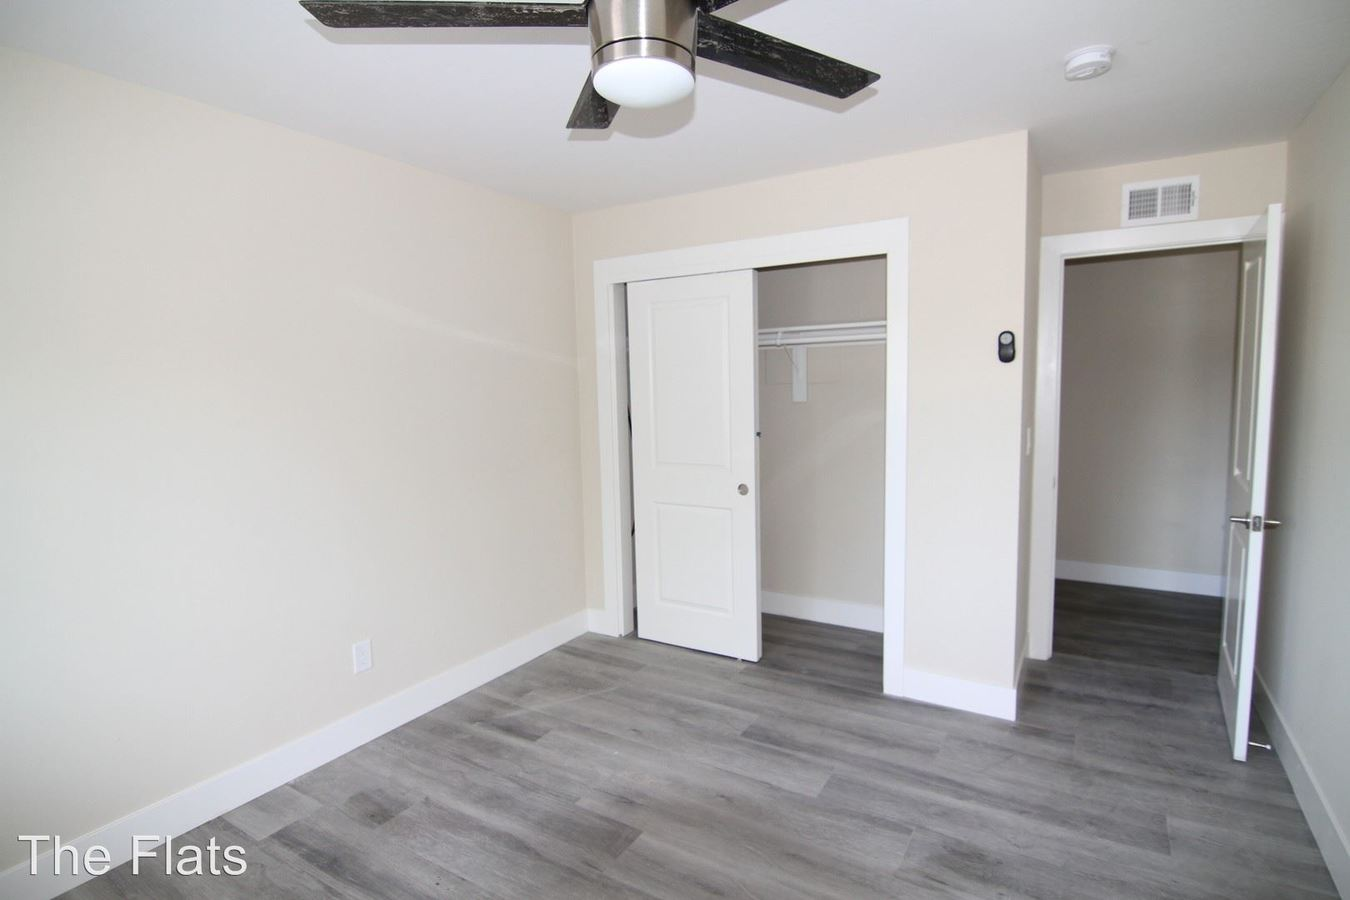 2 Bedrooms 1 Bathroom Apartment for rent at 2280 Latham Street in Mountain View, CA